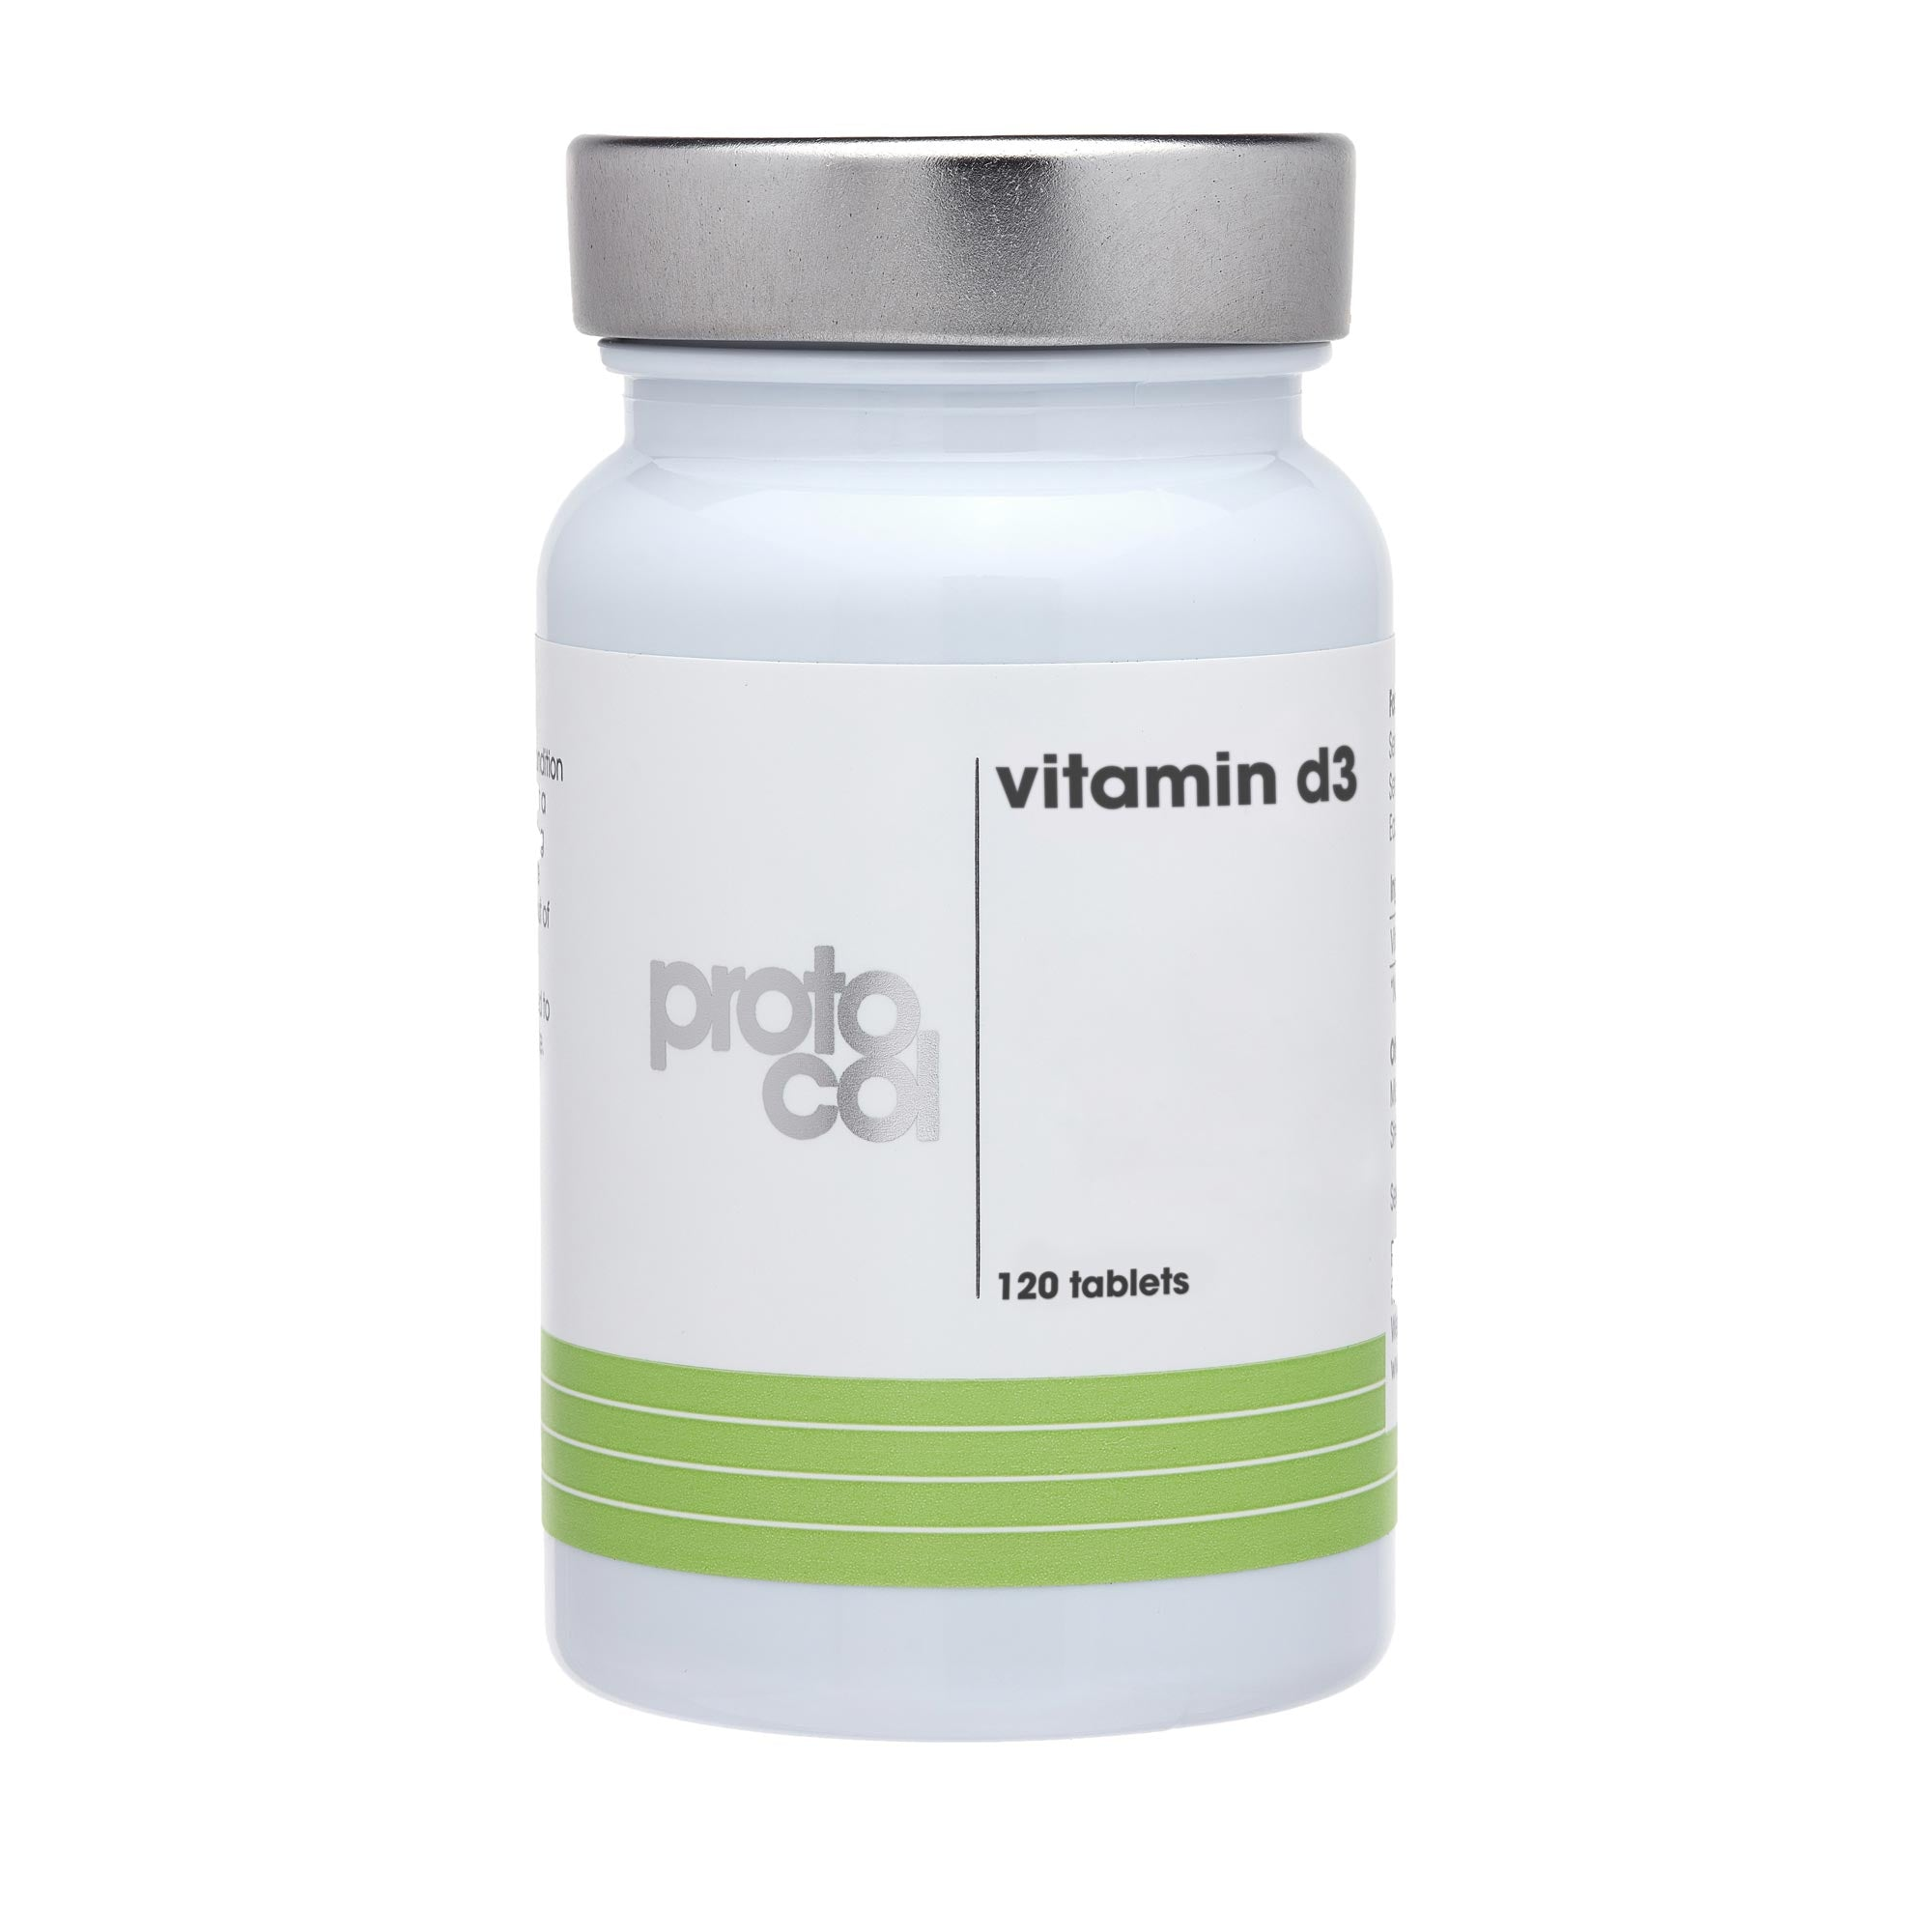 An image of Vitamin d3